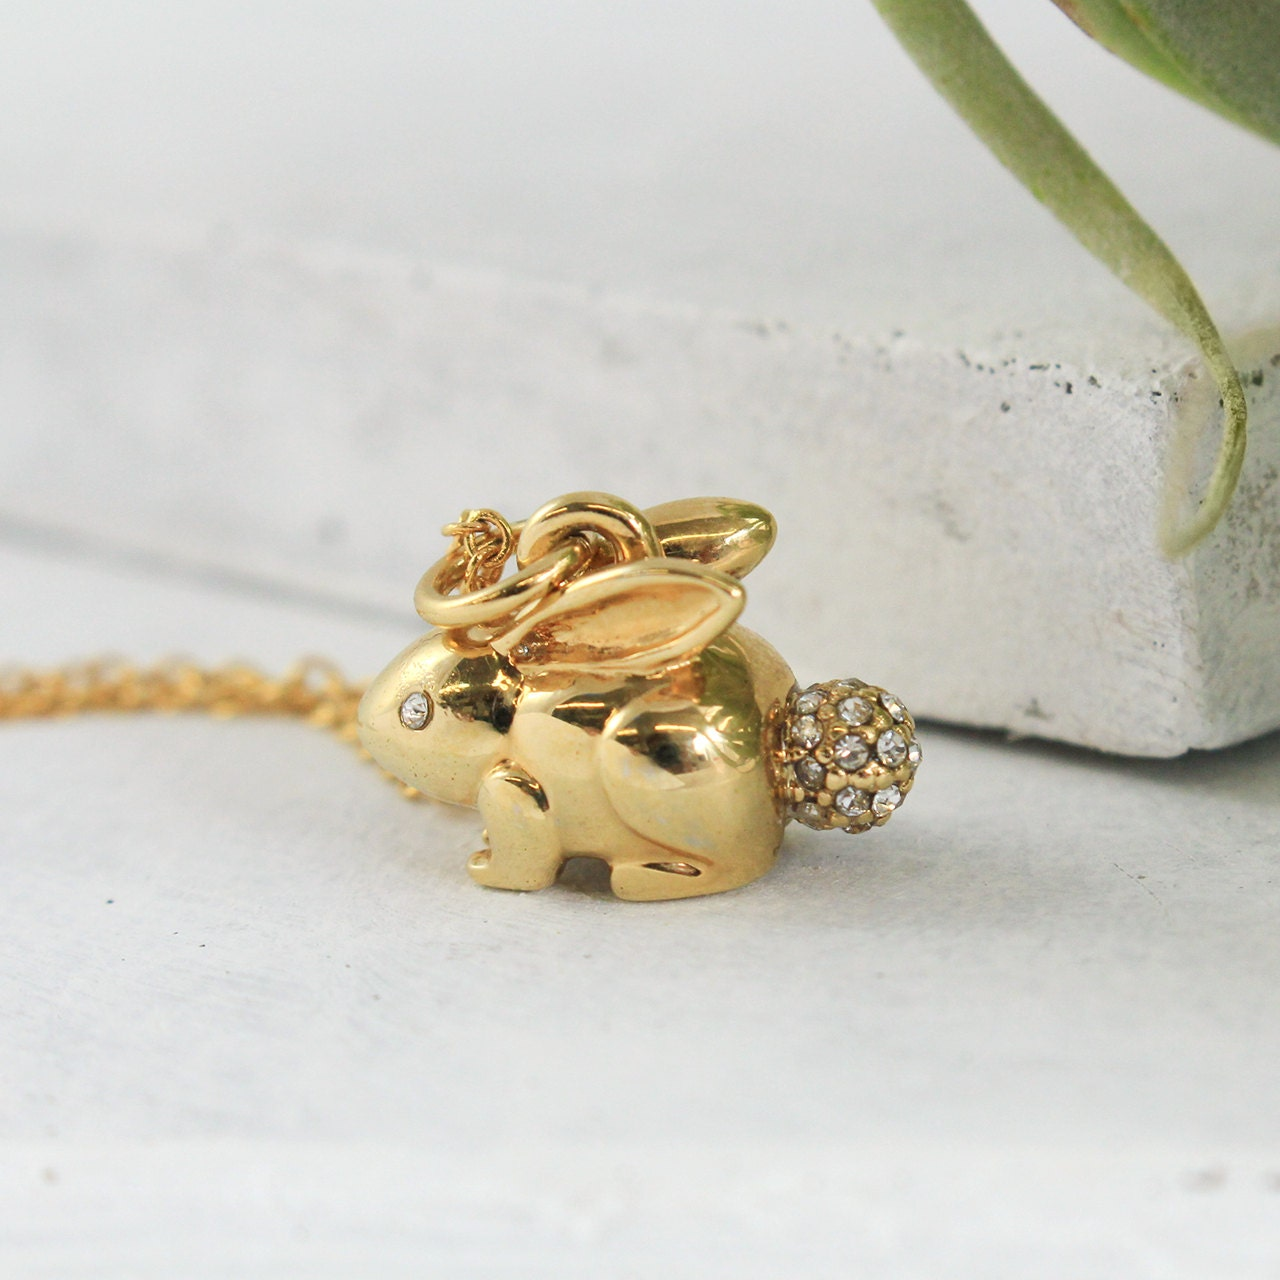 bunny rabbit necklace gold pave charm by